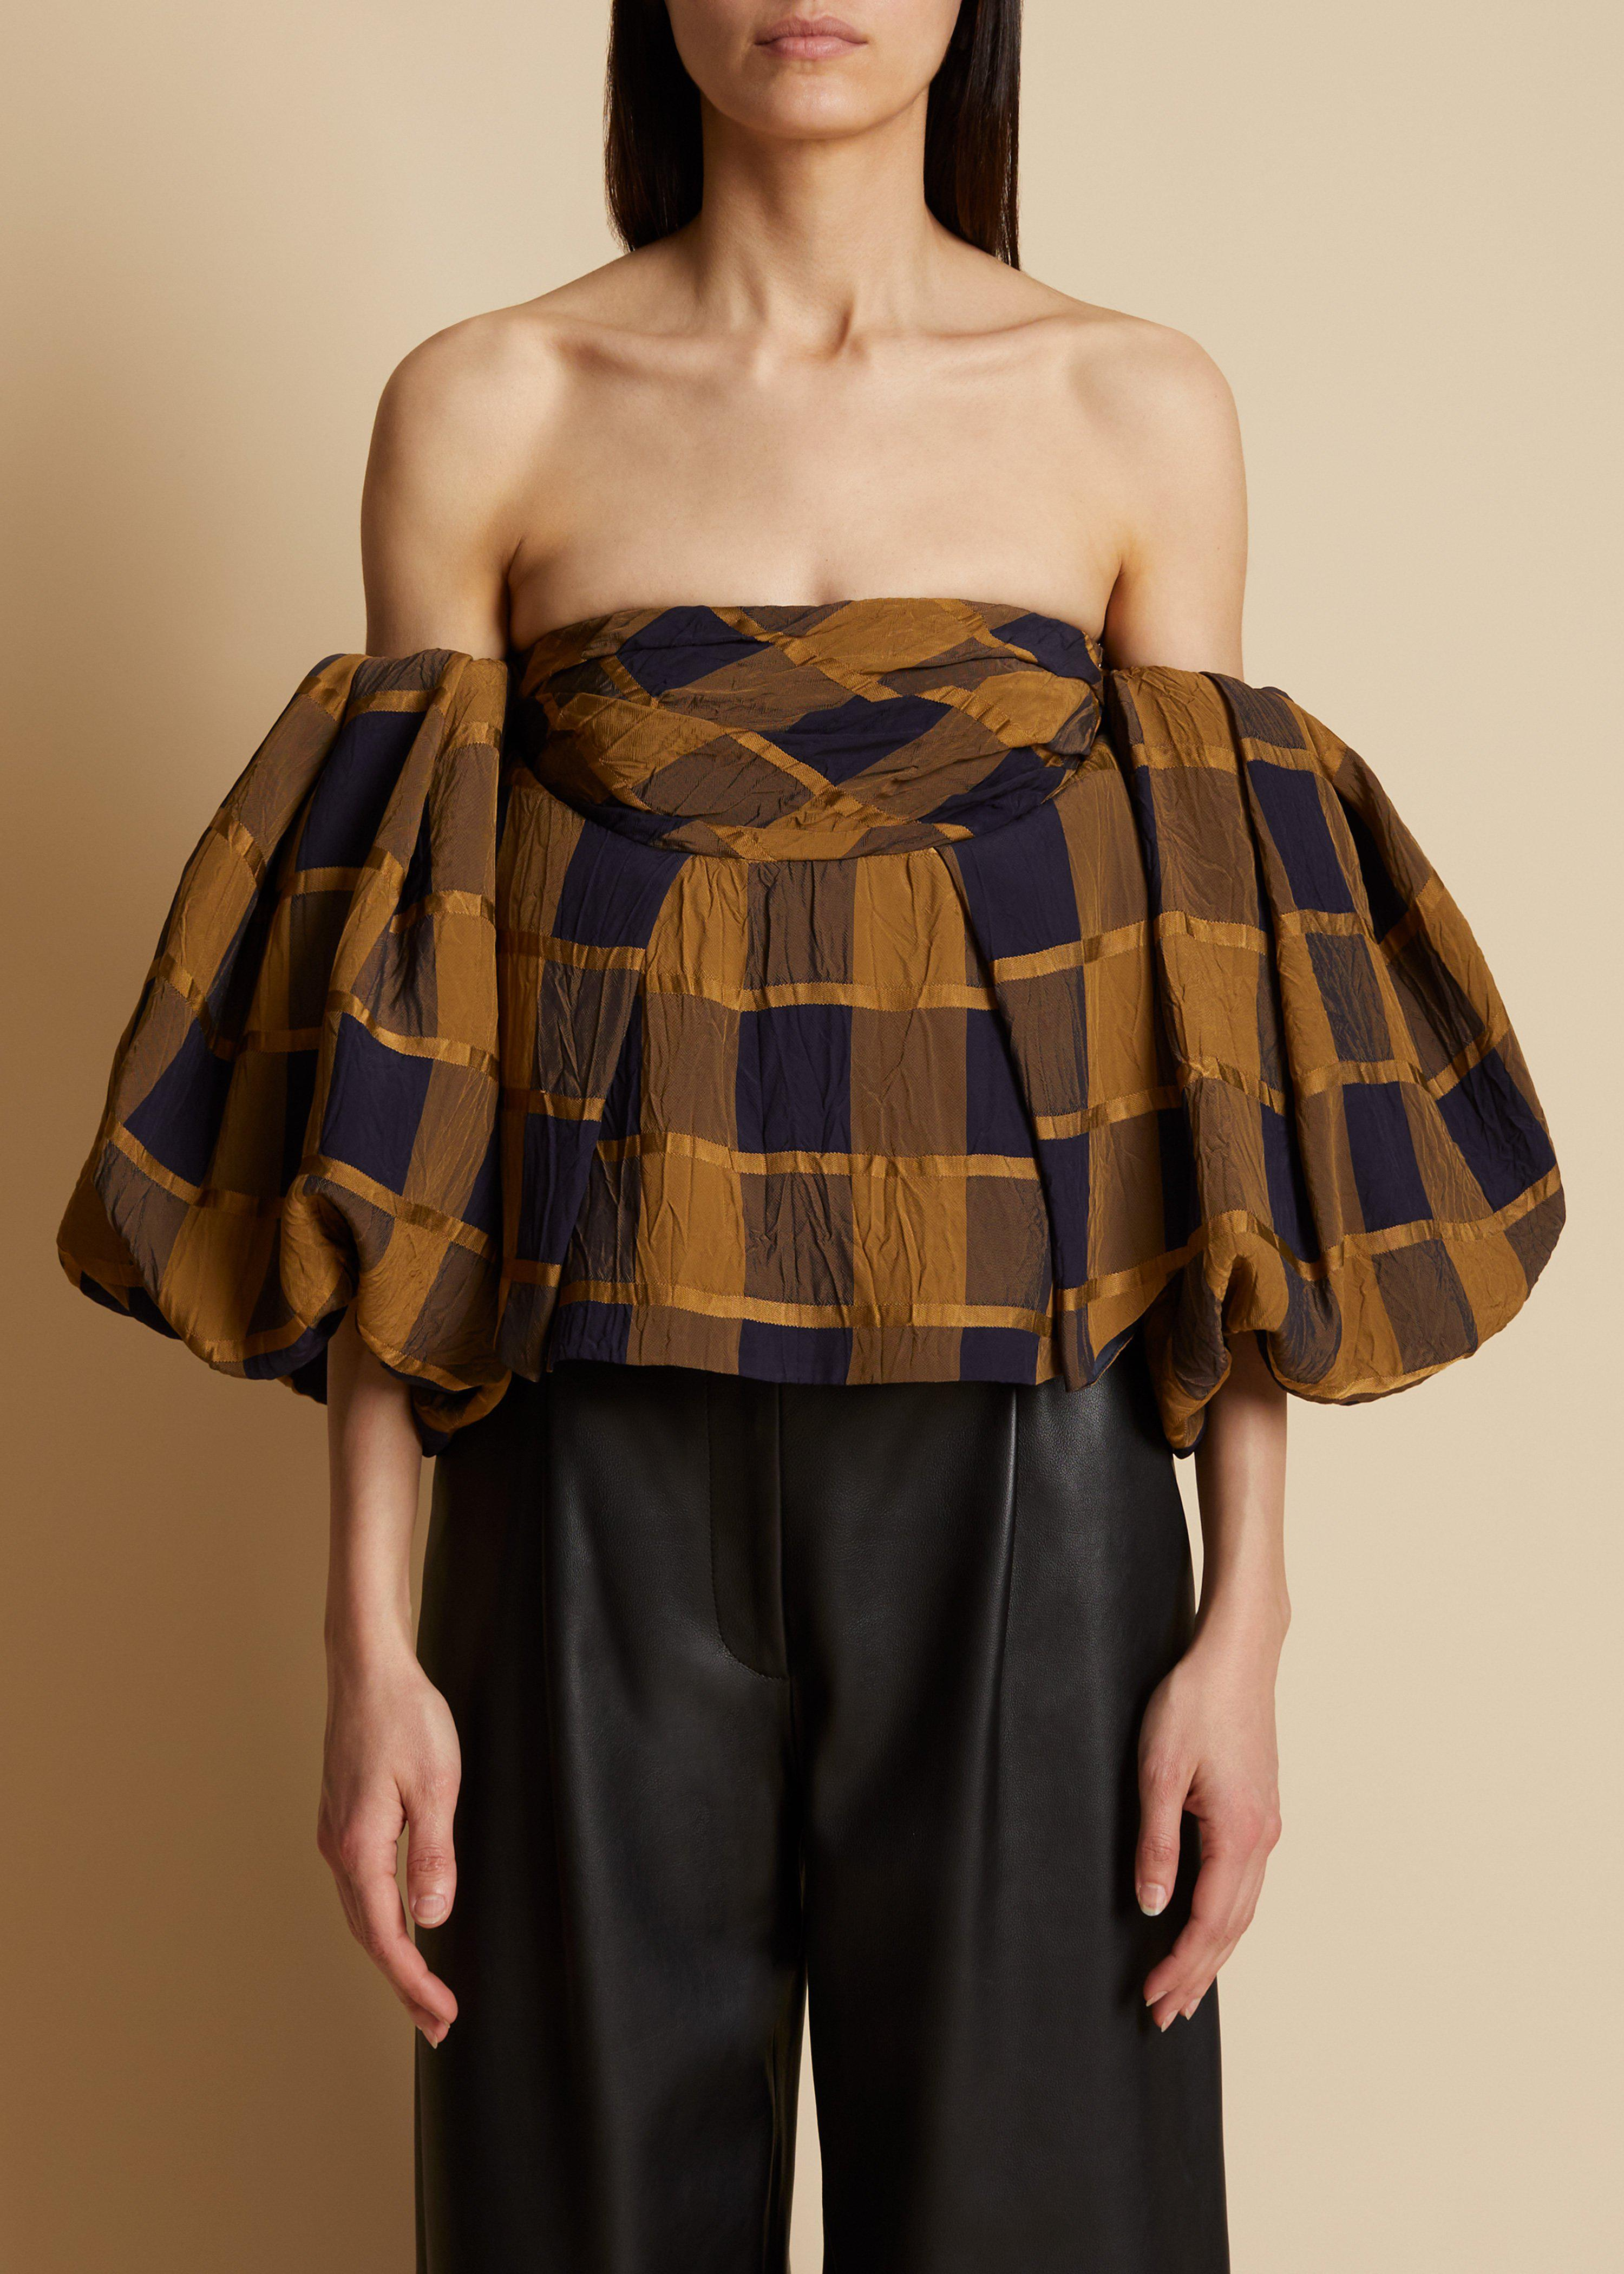 The Katerina Top in Goldenrod and Navy